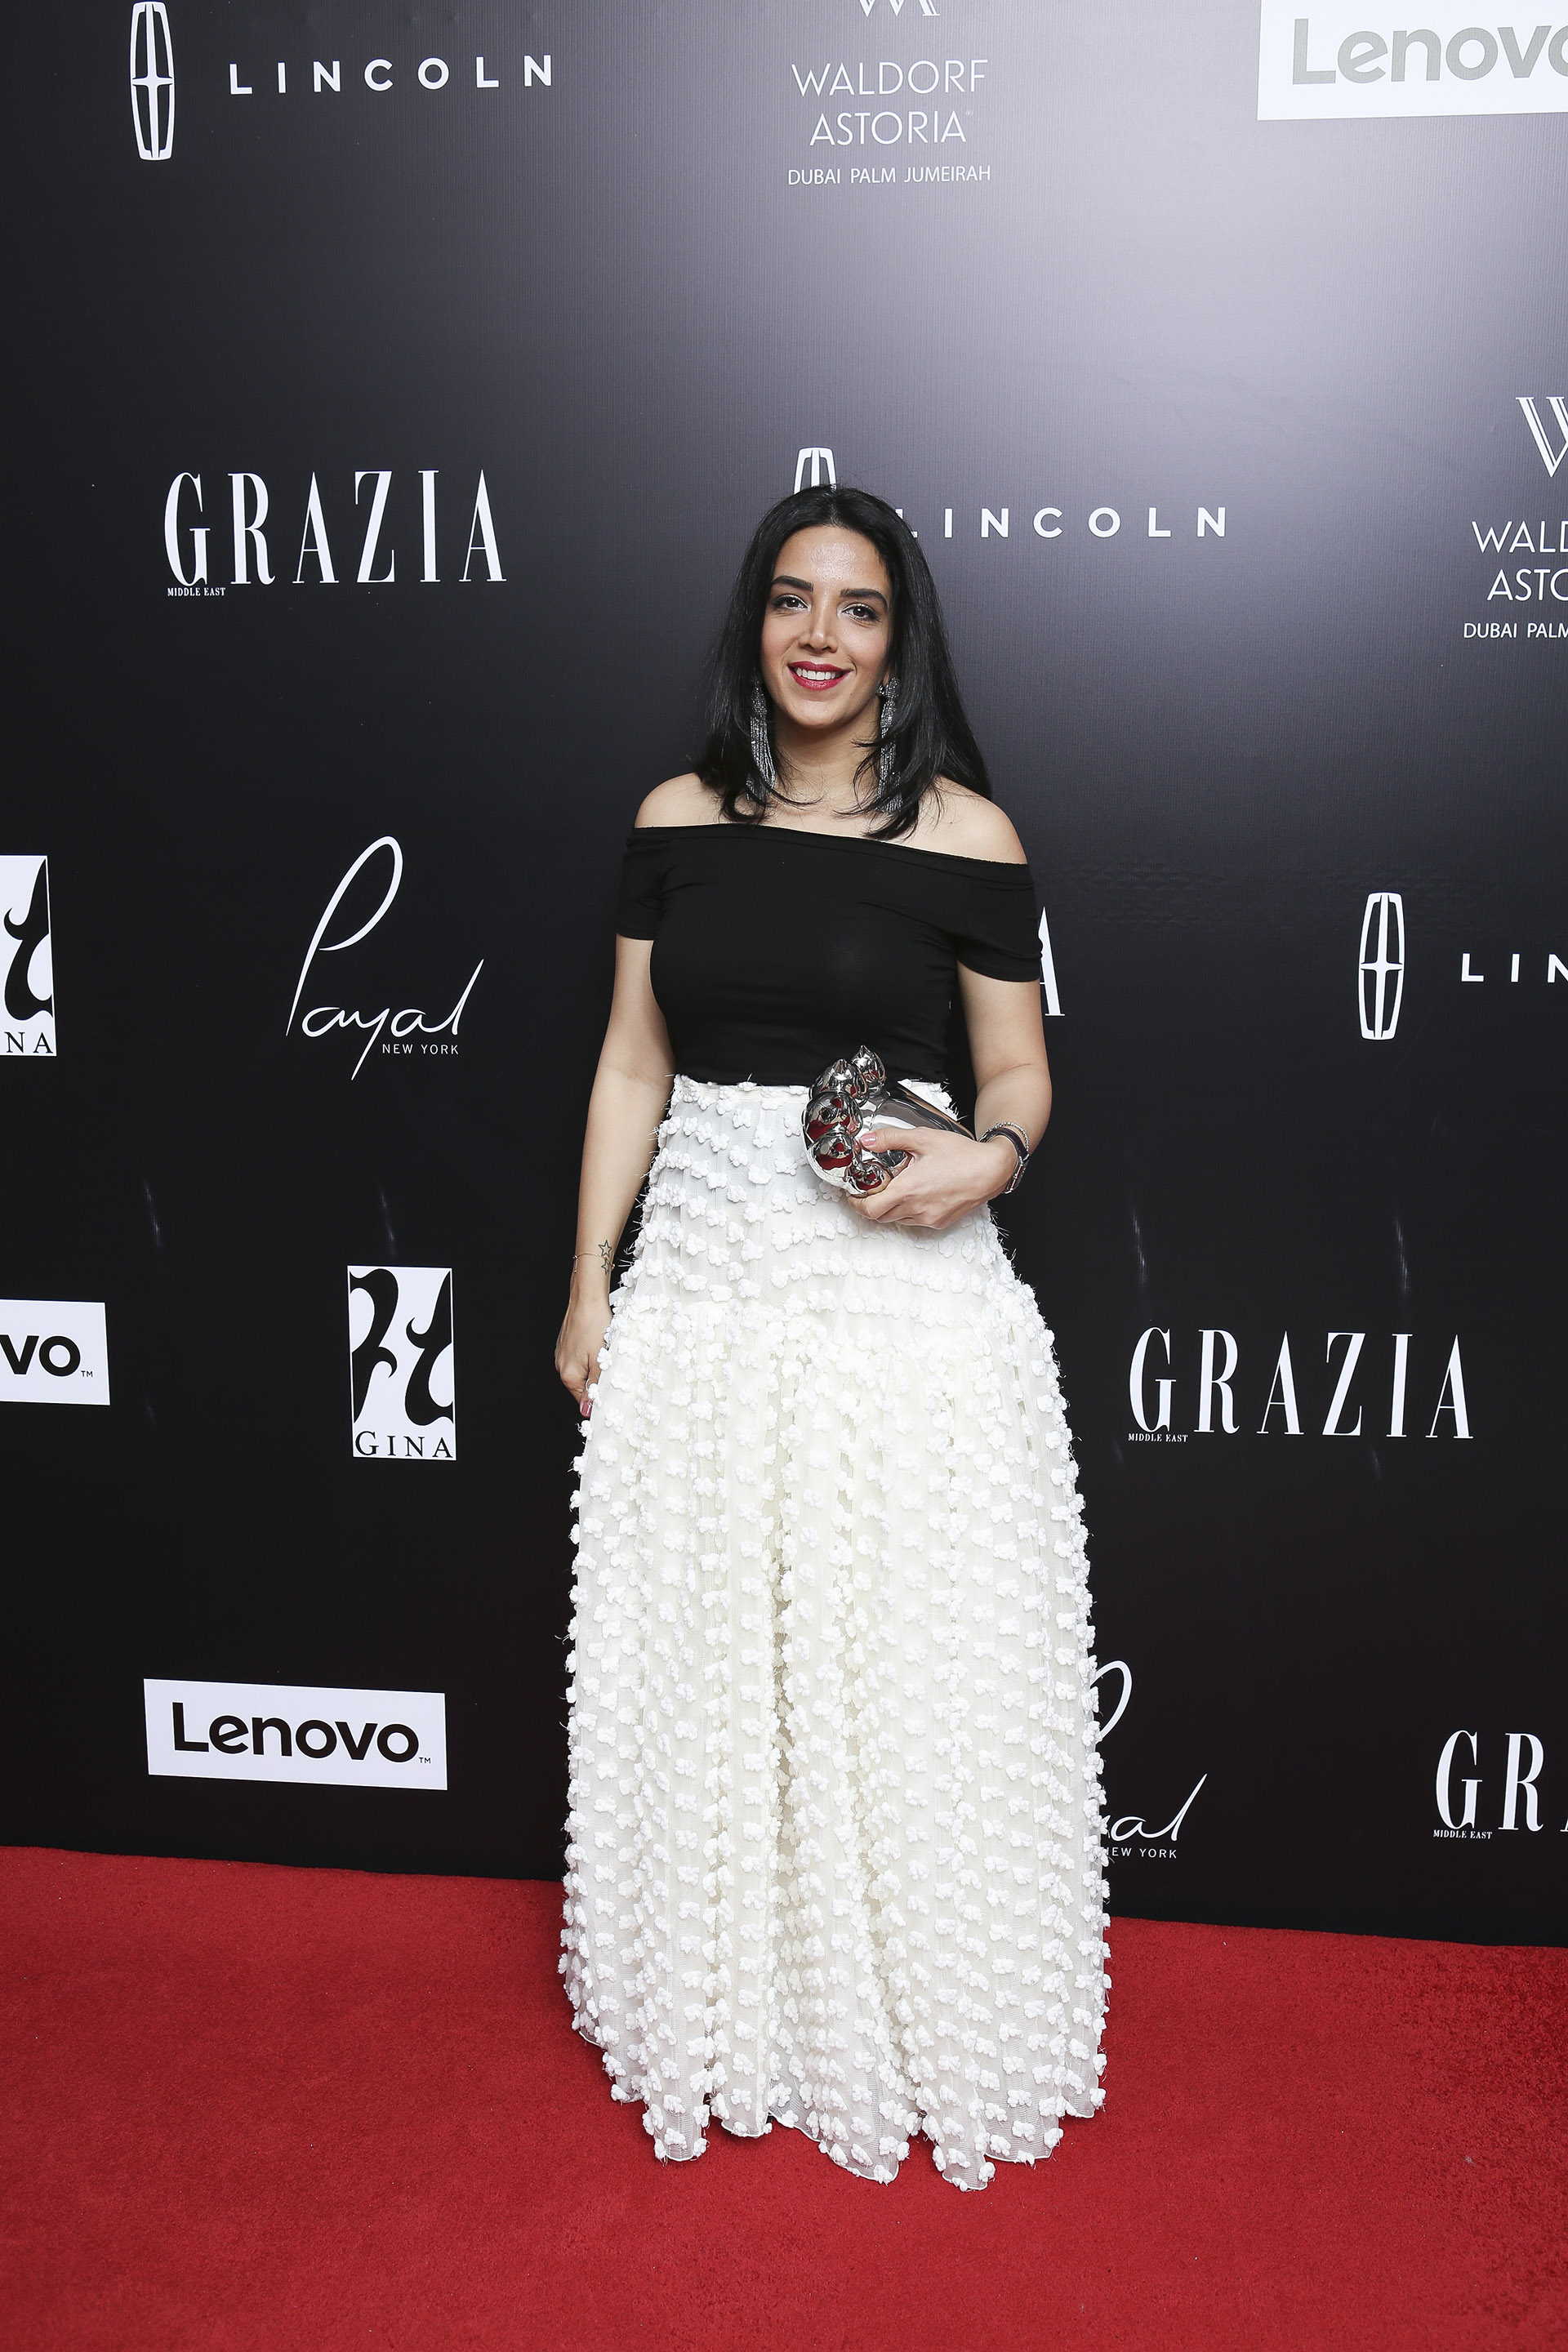 Grazia Style awards 2016 , held at Waldorf Astoria The Palm,